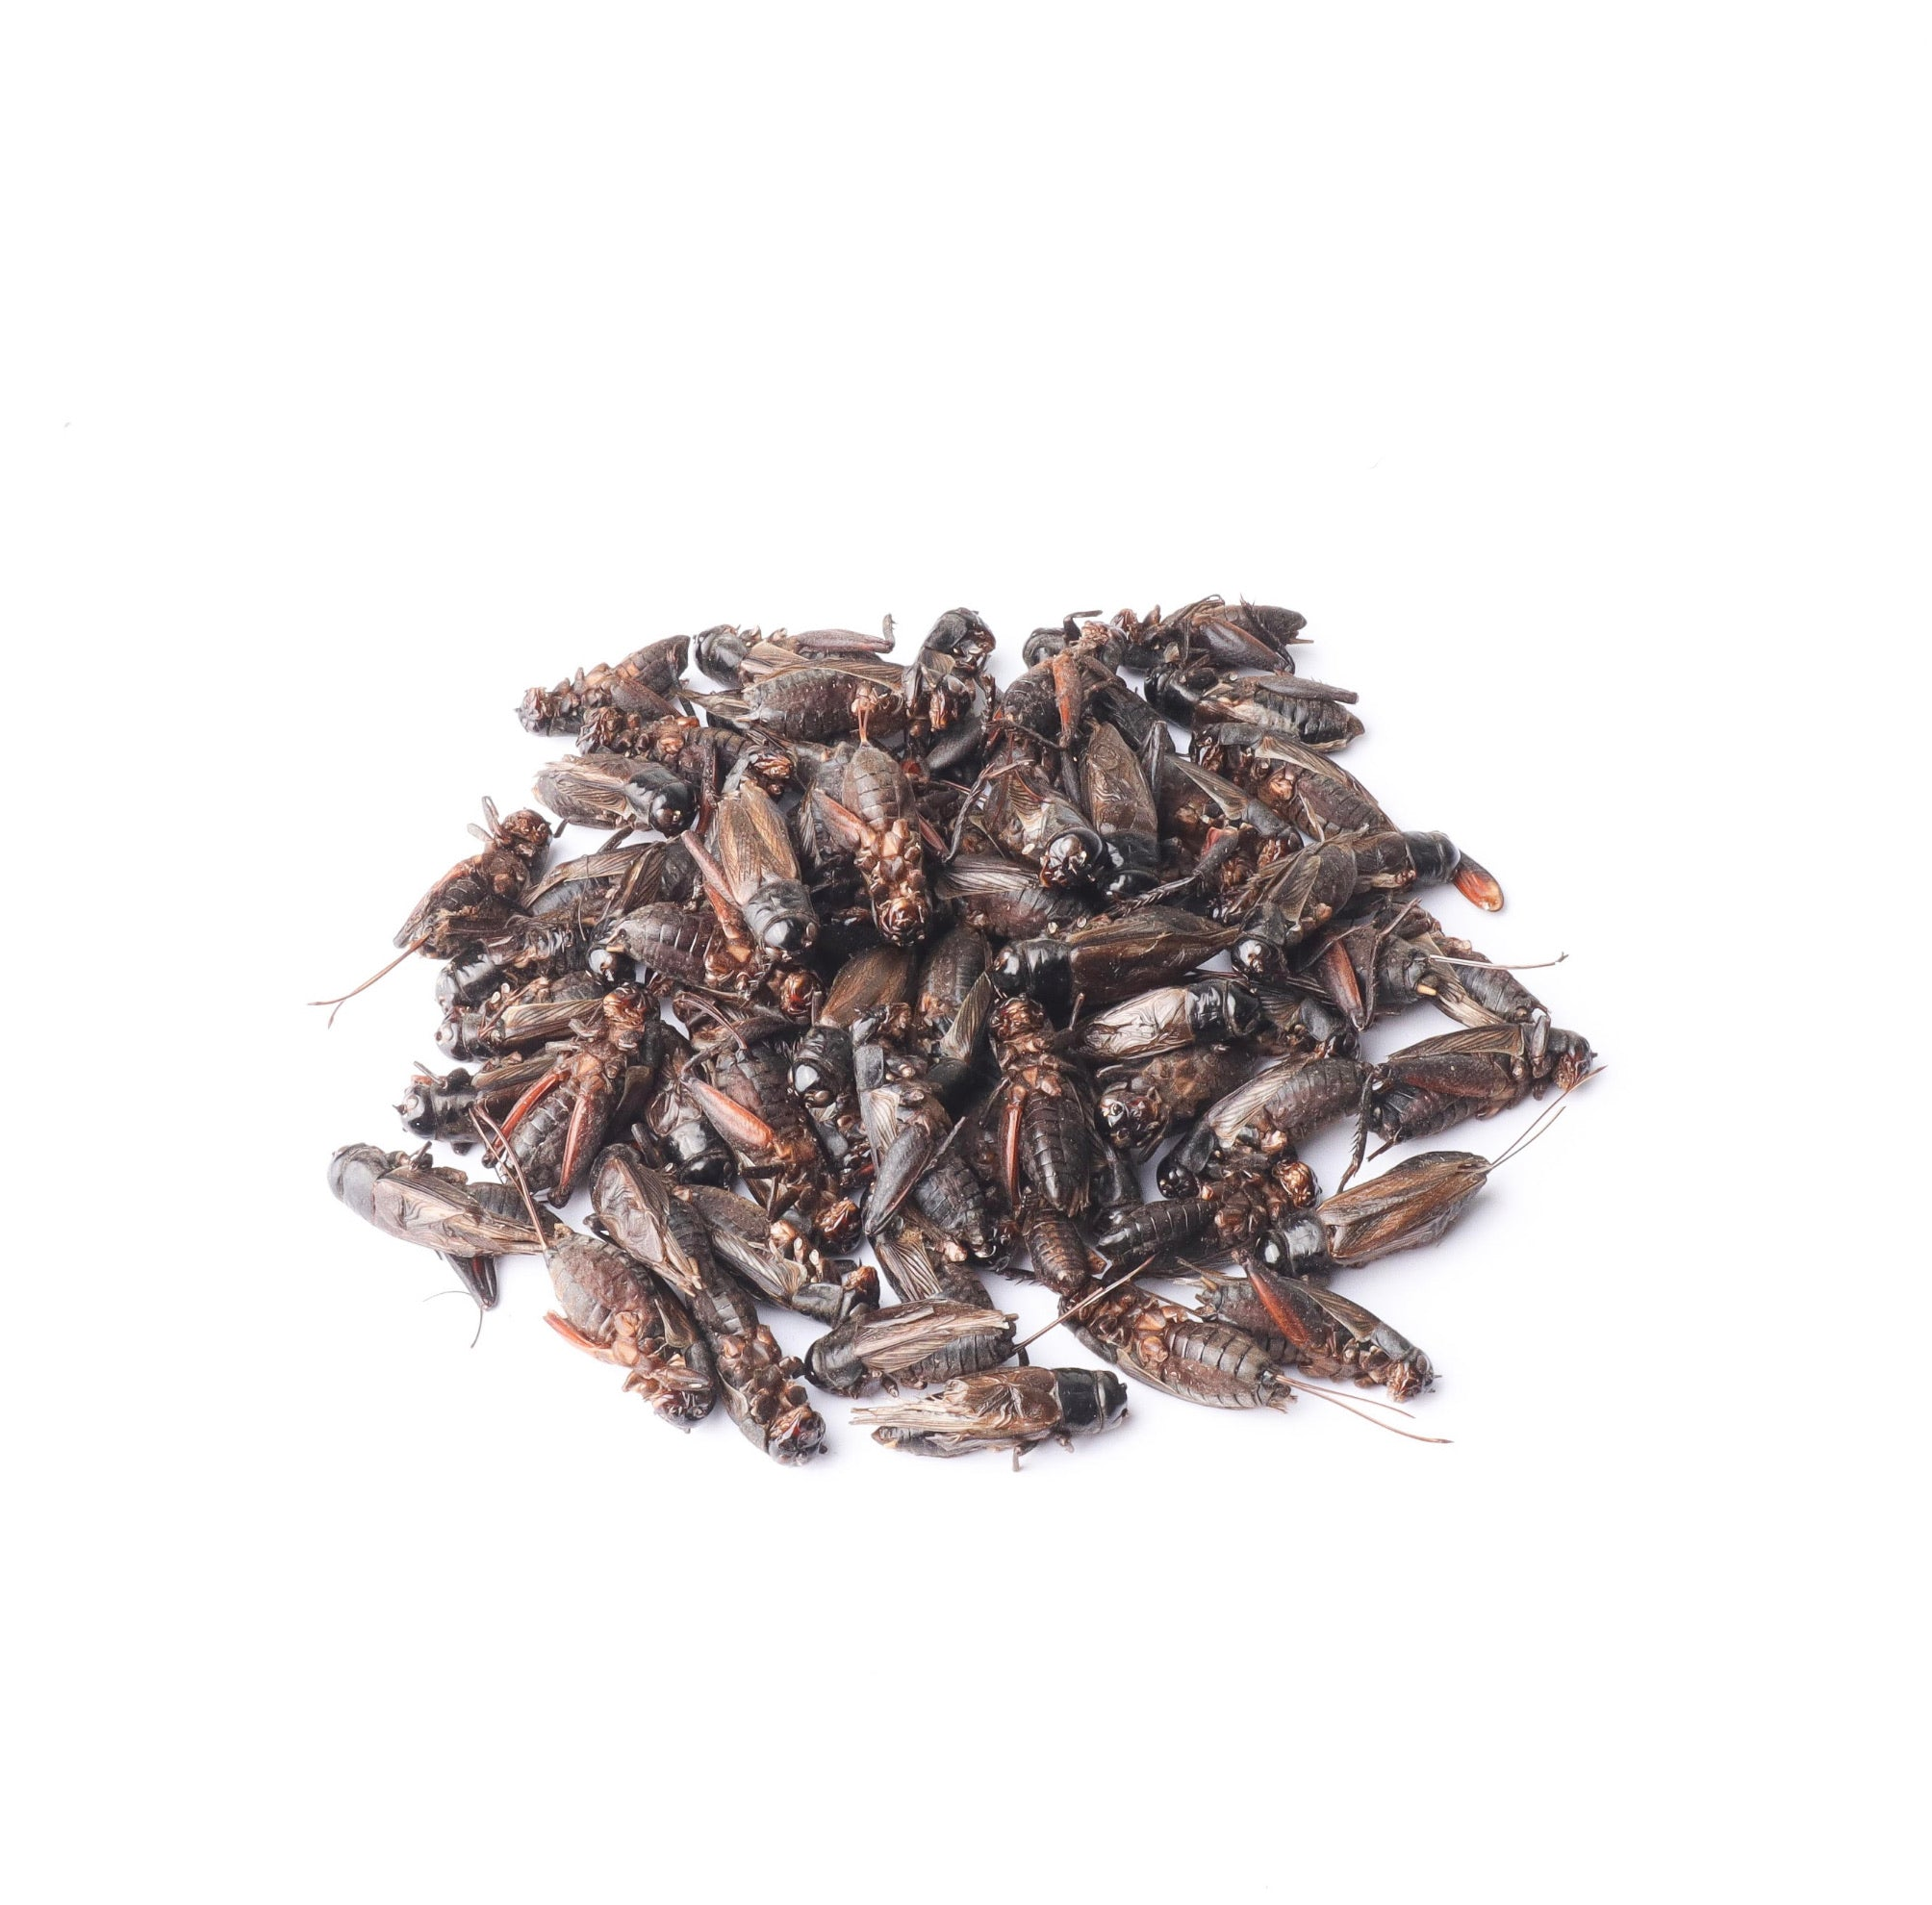 Dried Crickets